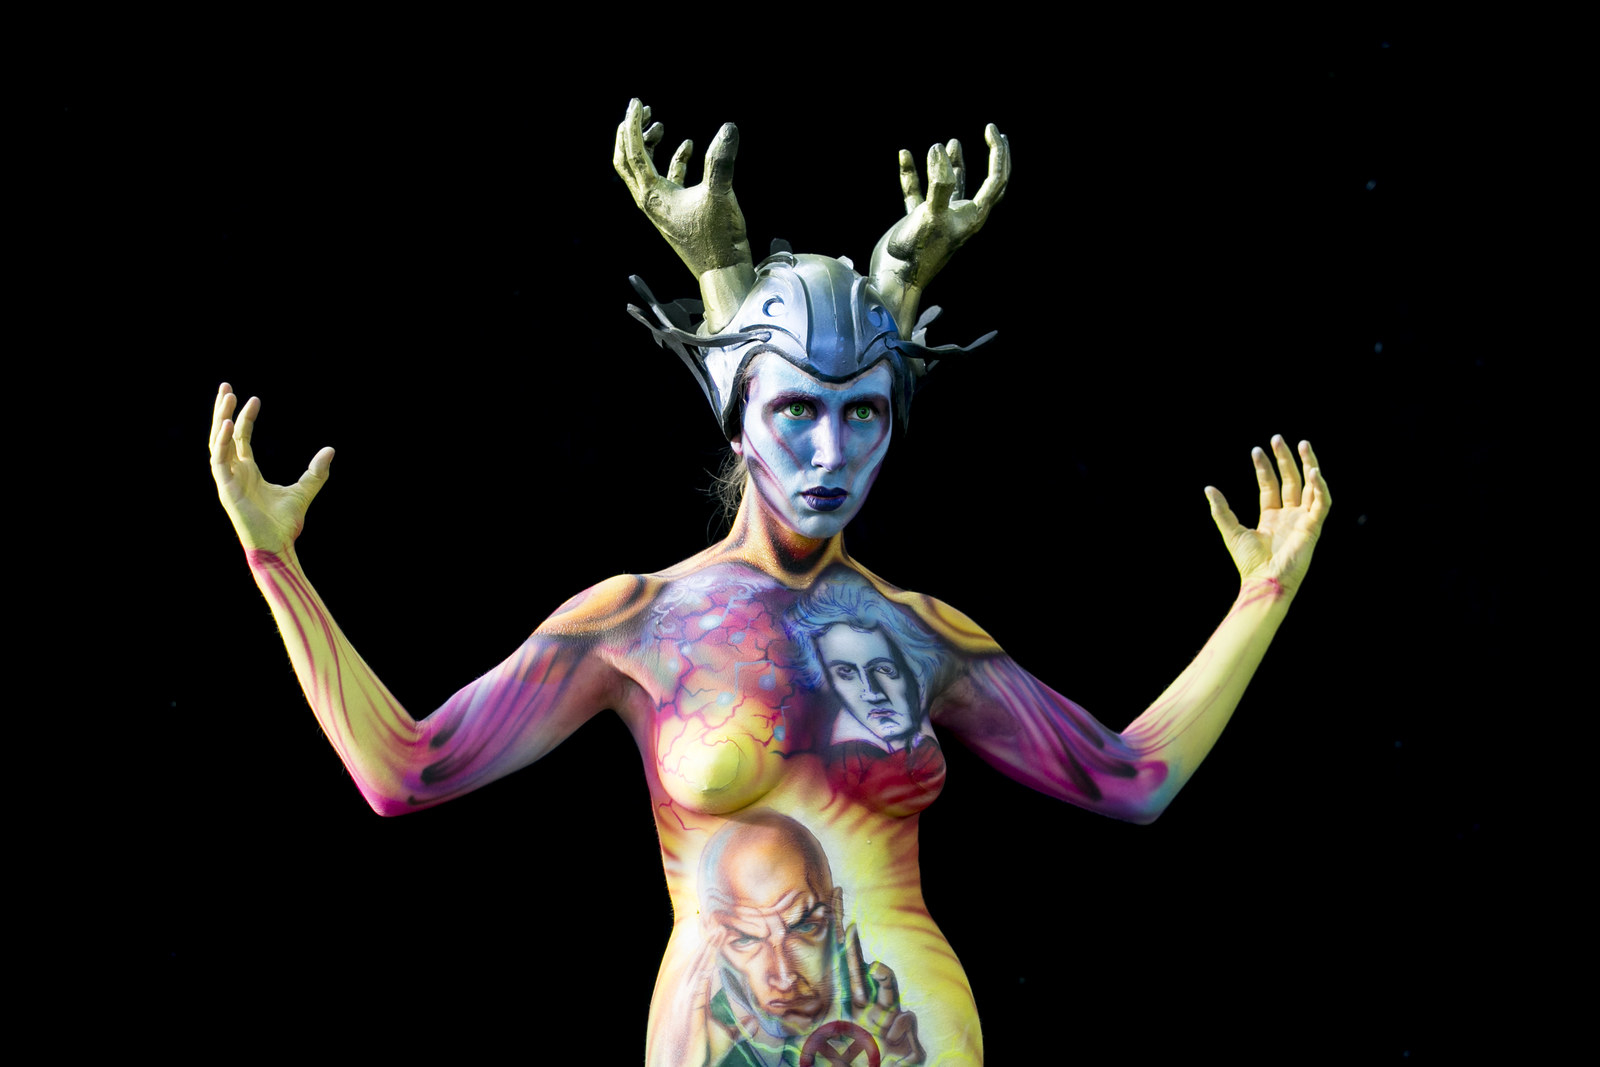 Wild photos from bodypainting festival PHOTOS : World Bodypainting Festival gets creative